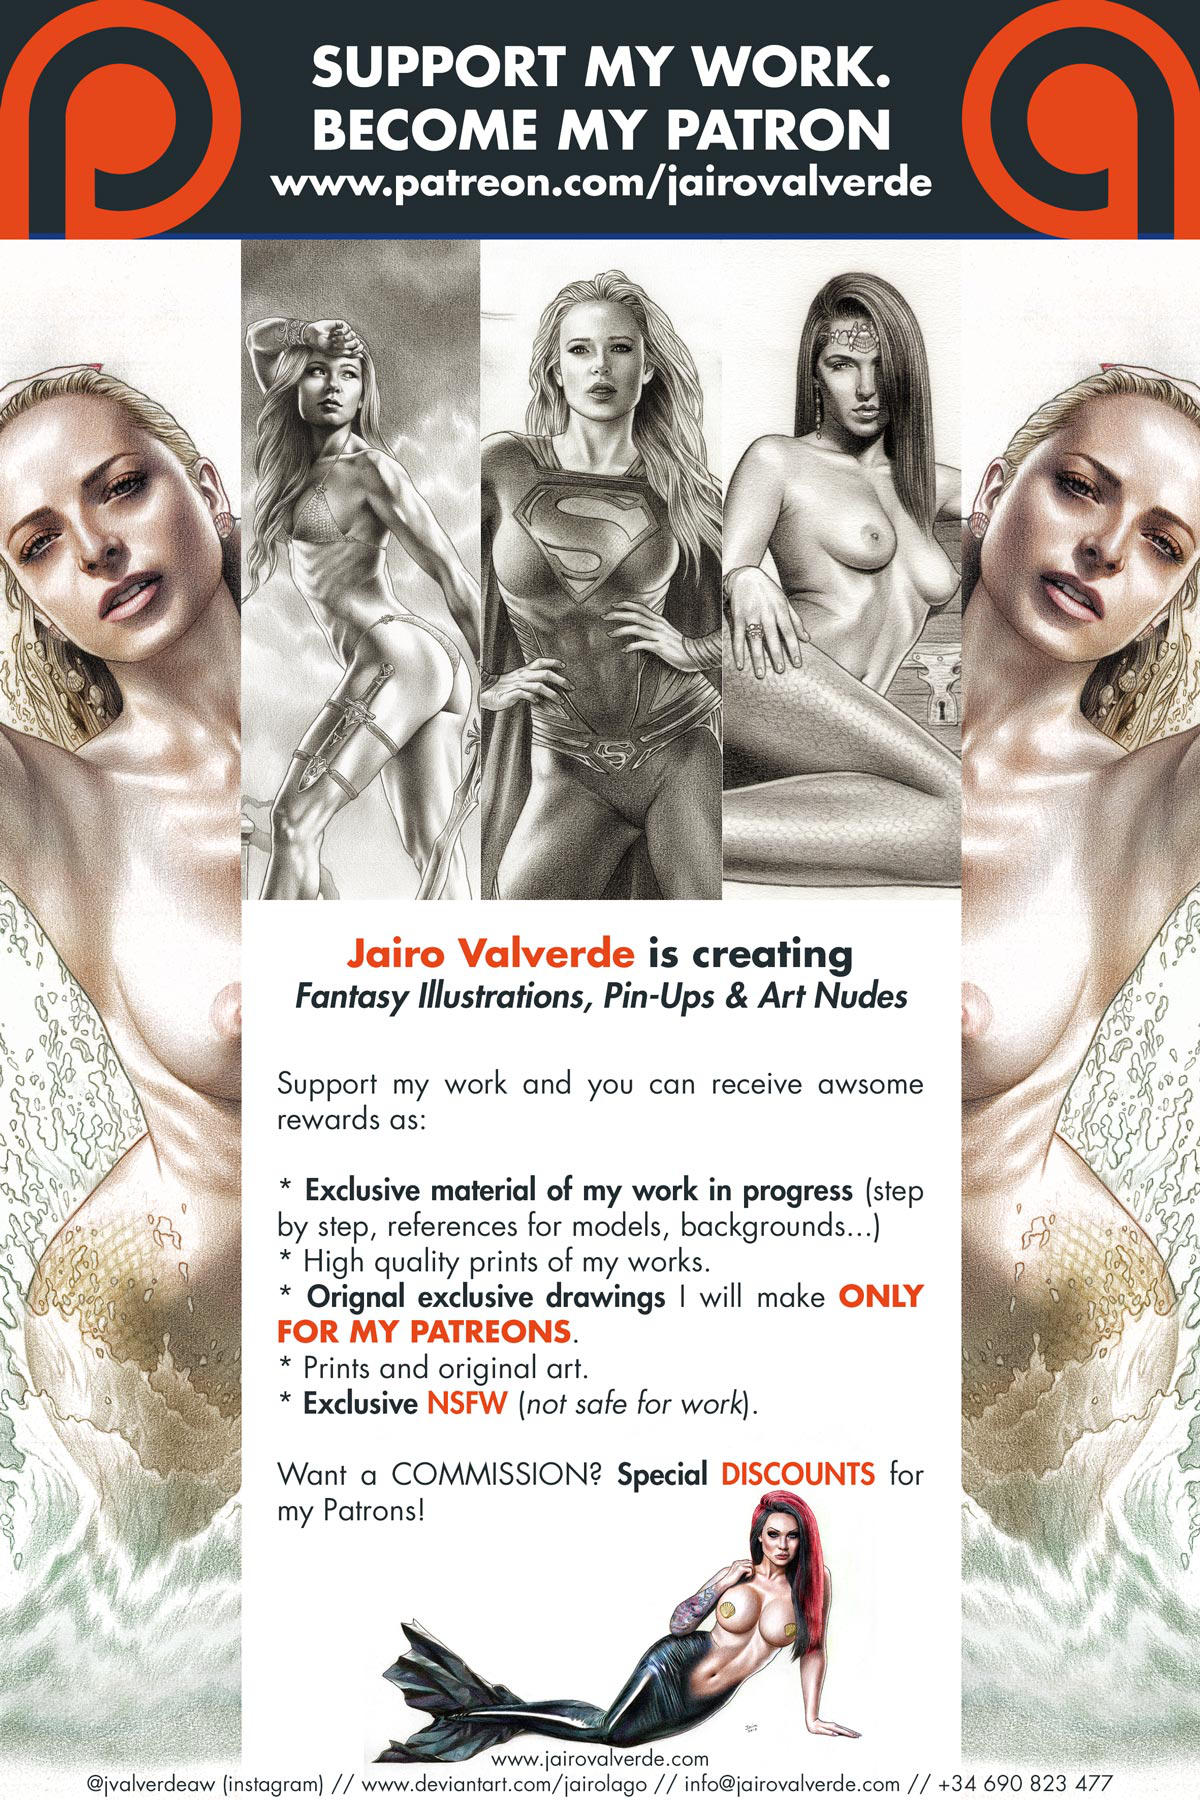 SUPPORT MY WORK - BECOME MY PATRON by jairolago